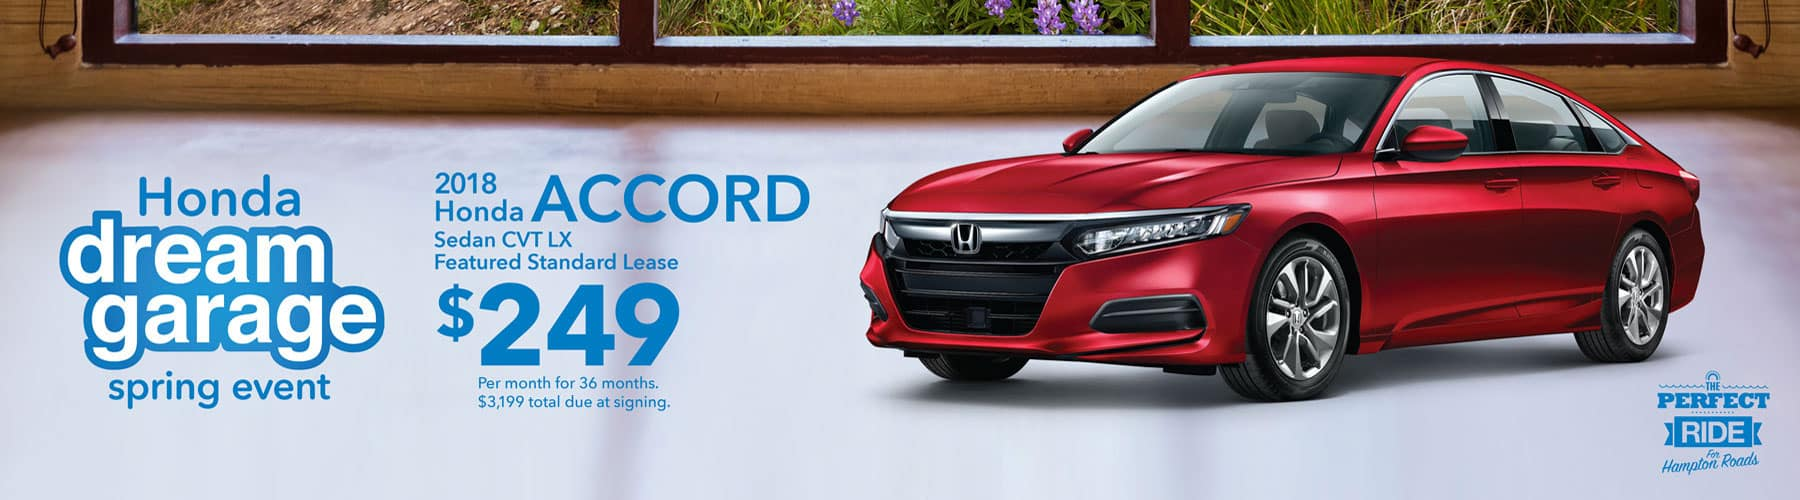 Hampton Roads Honda Dream Garage Spring Event 2018 Honda Accord